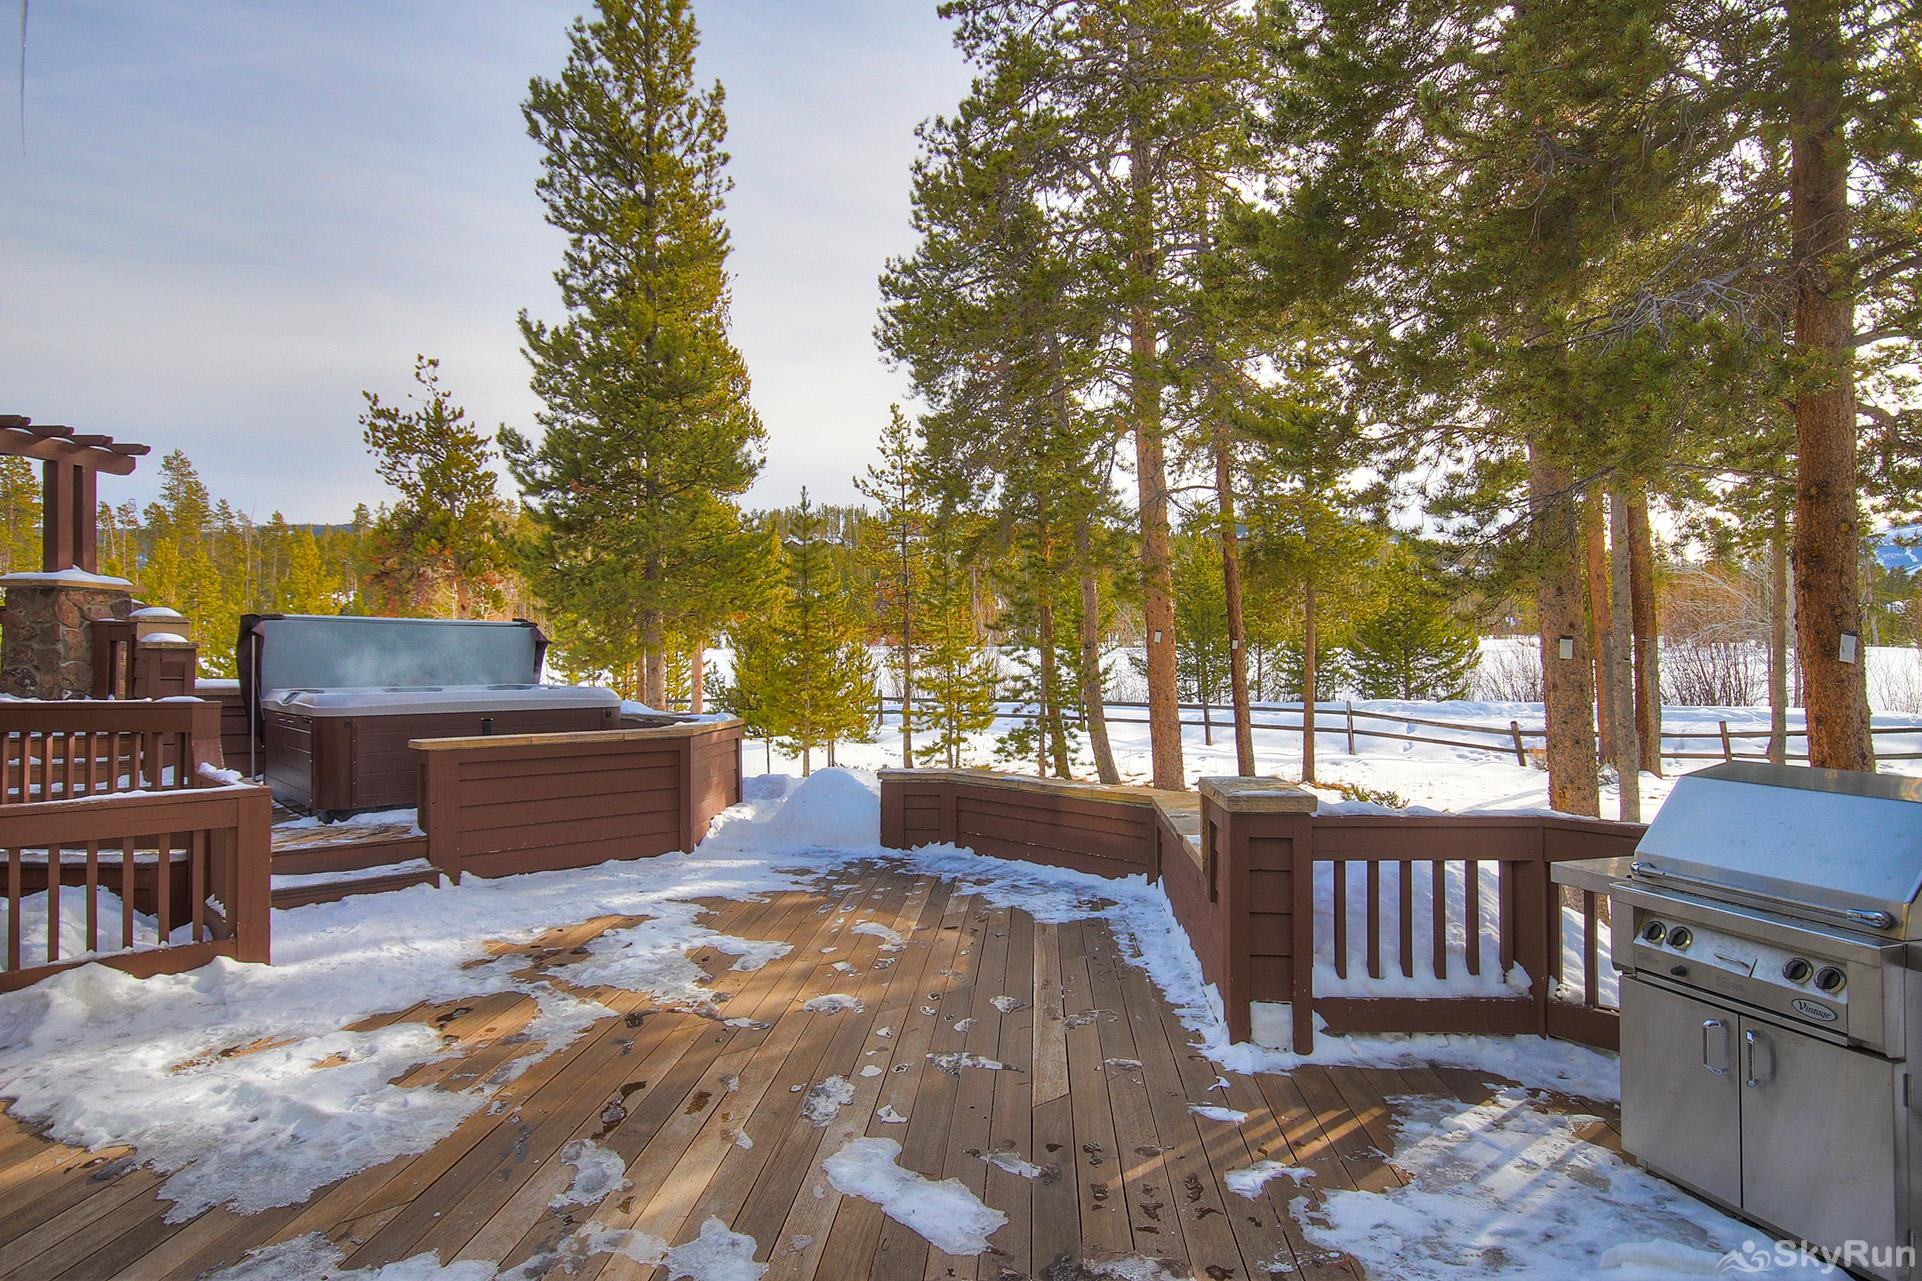 Marksberry Lodge Spacious back deck with gas bbq, private hot tub